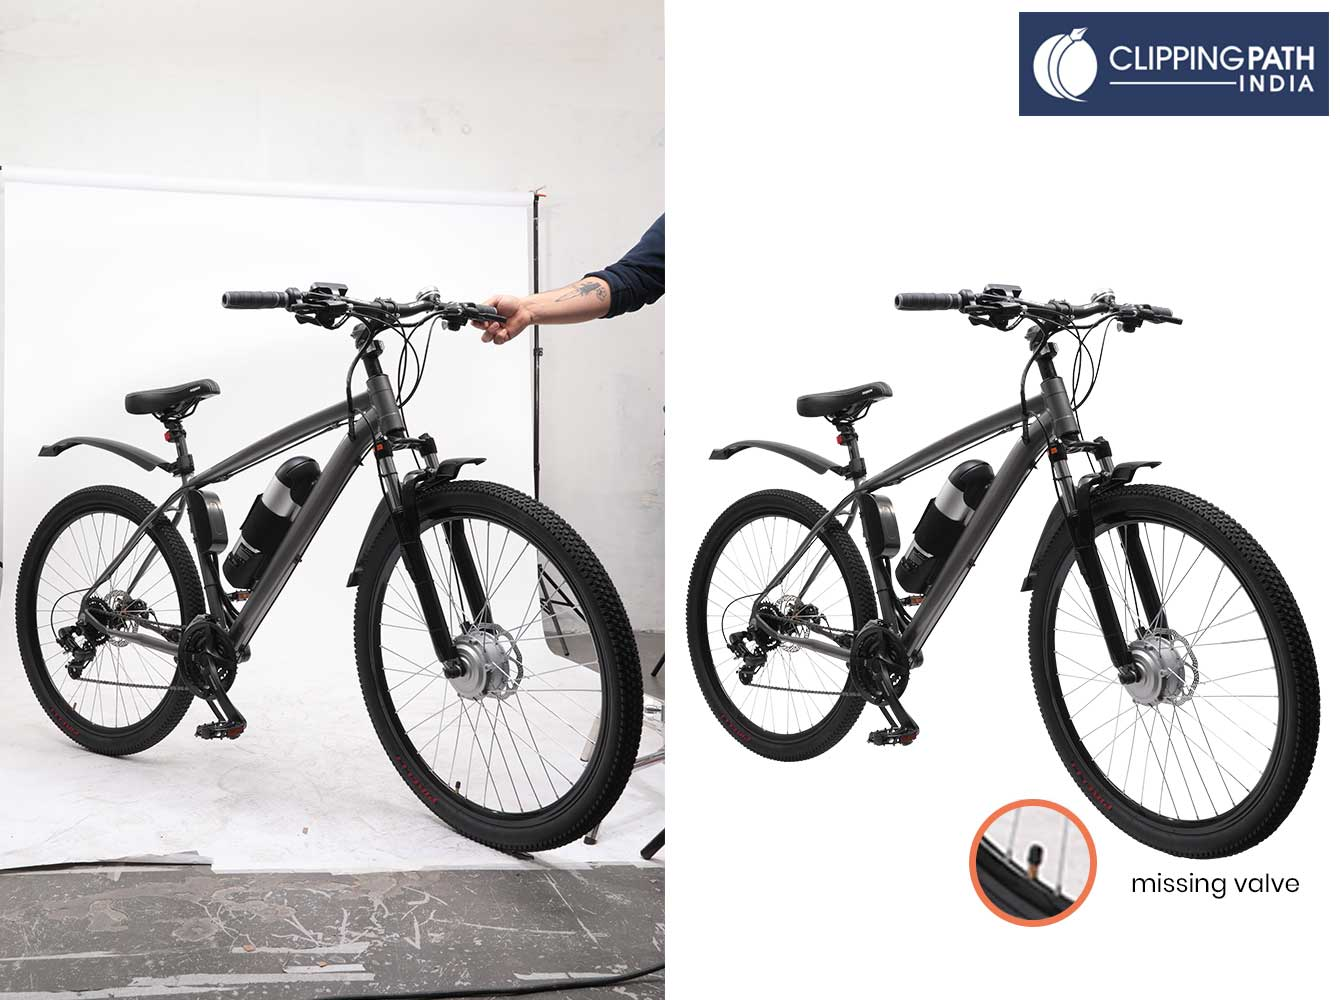 clipping path - clipping path india